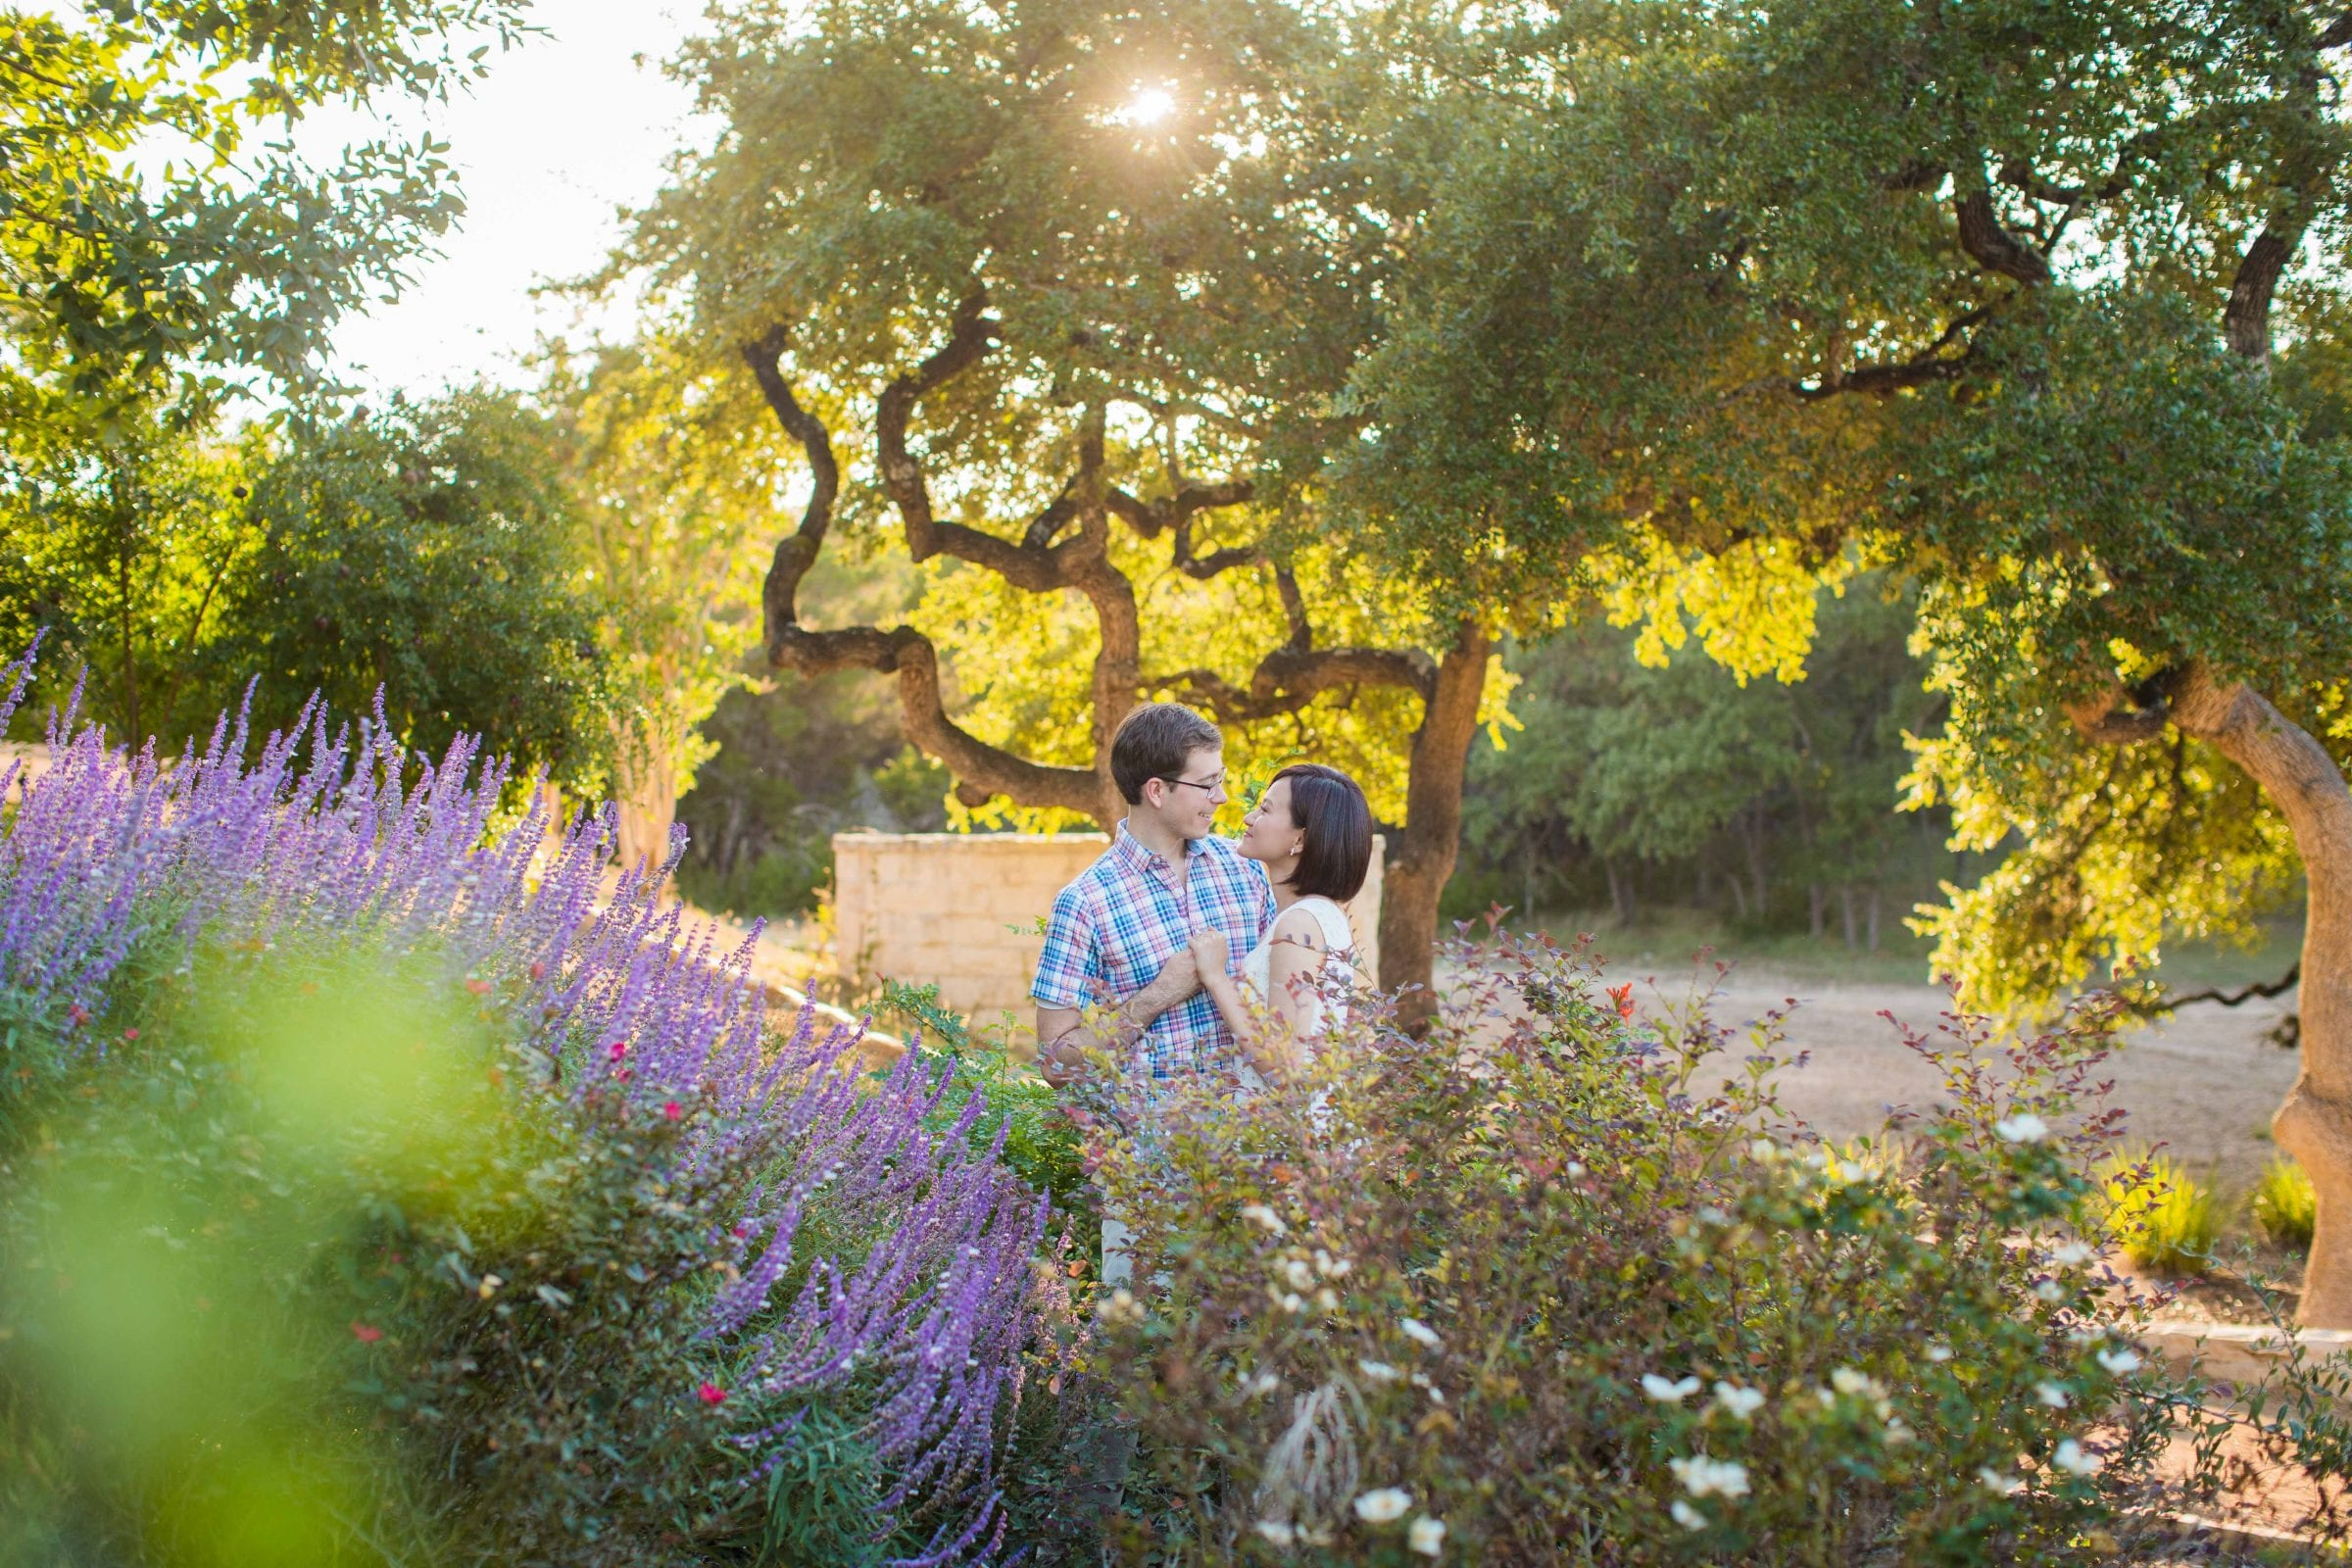 Josh and Tina engagement session at Kendall plantation in the garden